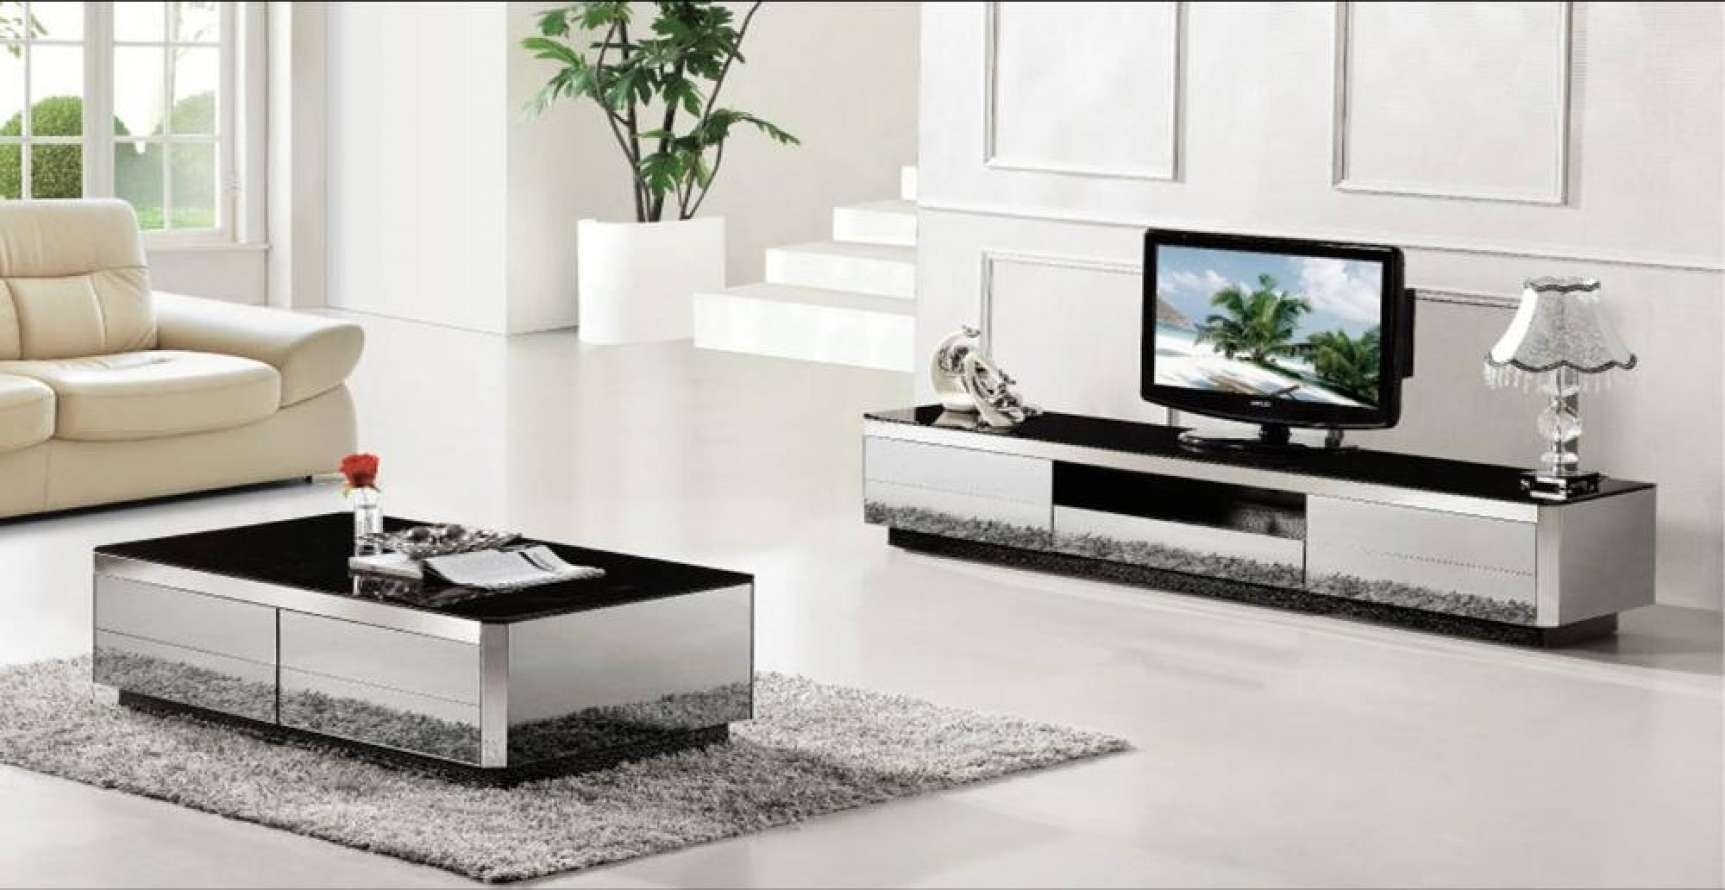 Coffee Table : Marvelous Coffee Table And Tv Stand Set Photos Intended For Coffee Tables And Tv Stands Matching (View 6 of 20)